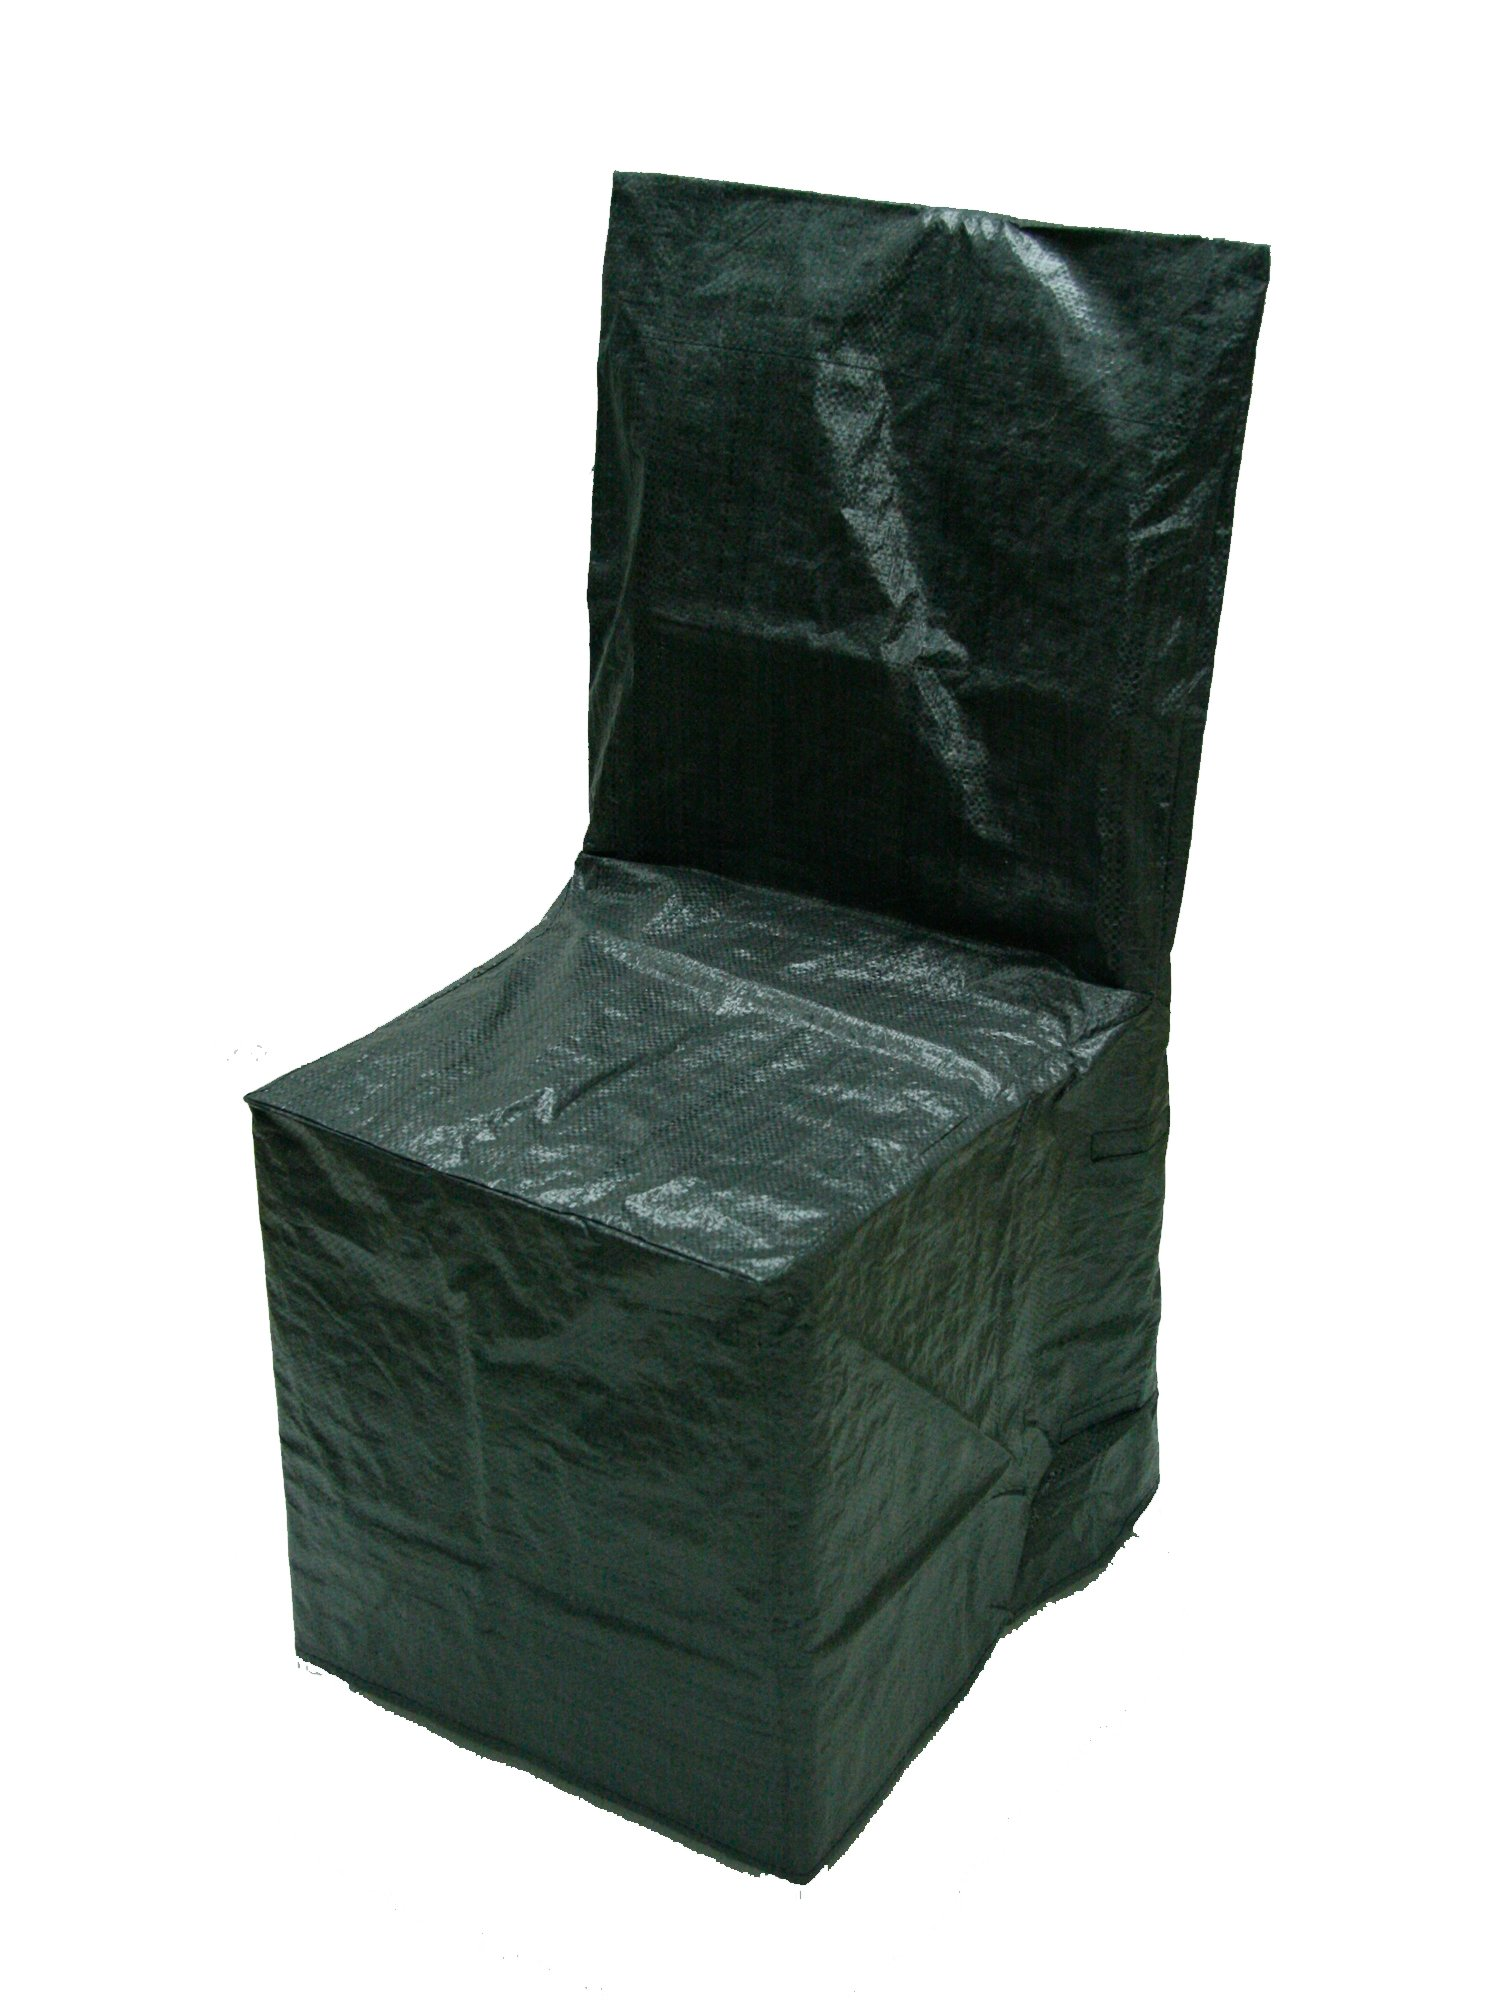 Commercial Seating Products BC-540 Ghost Armless Chair Storage Cover by G and A Commercial Seating (Image #1)